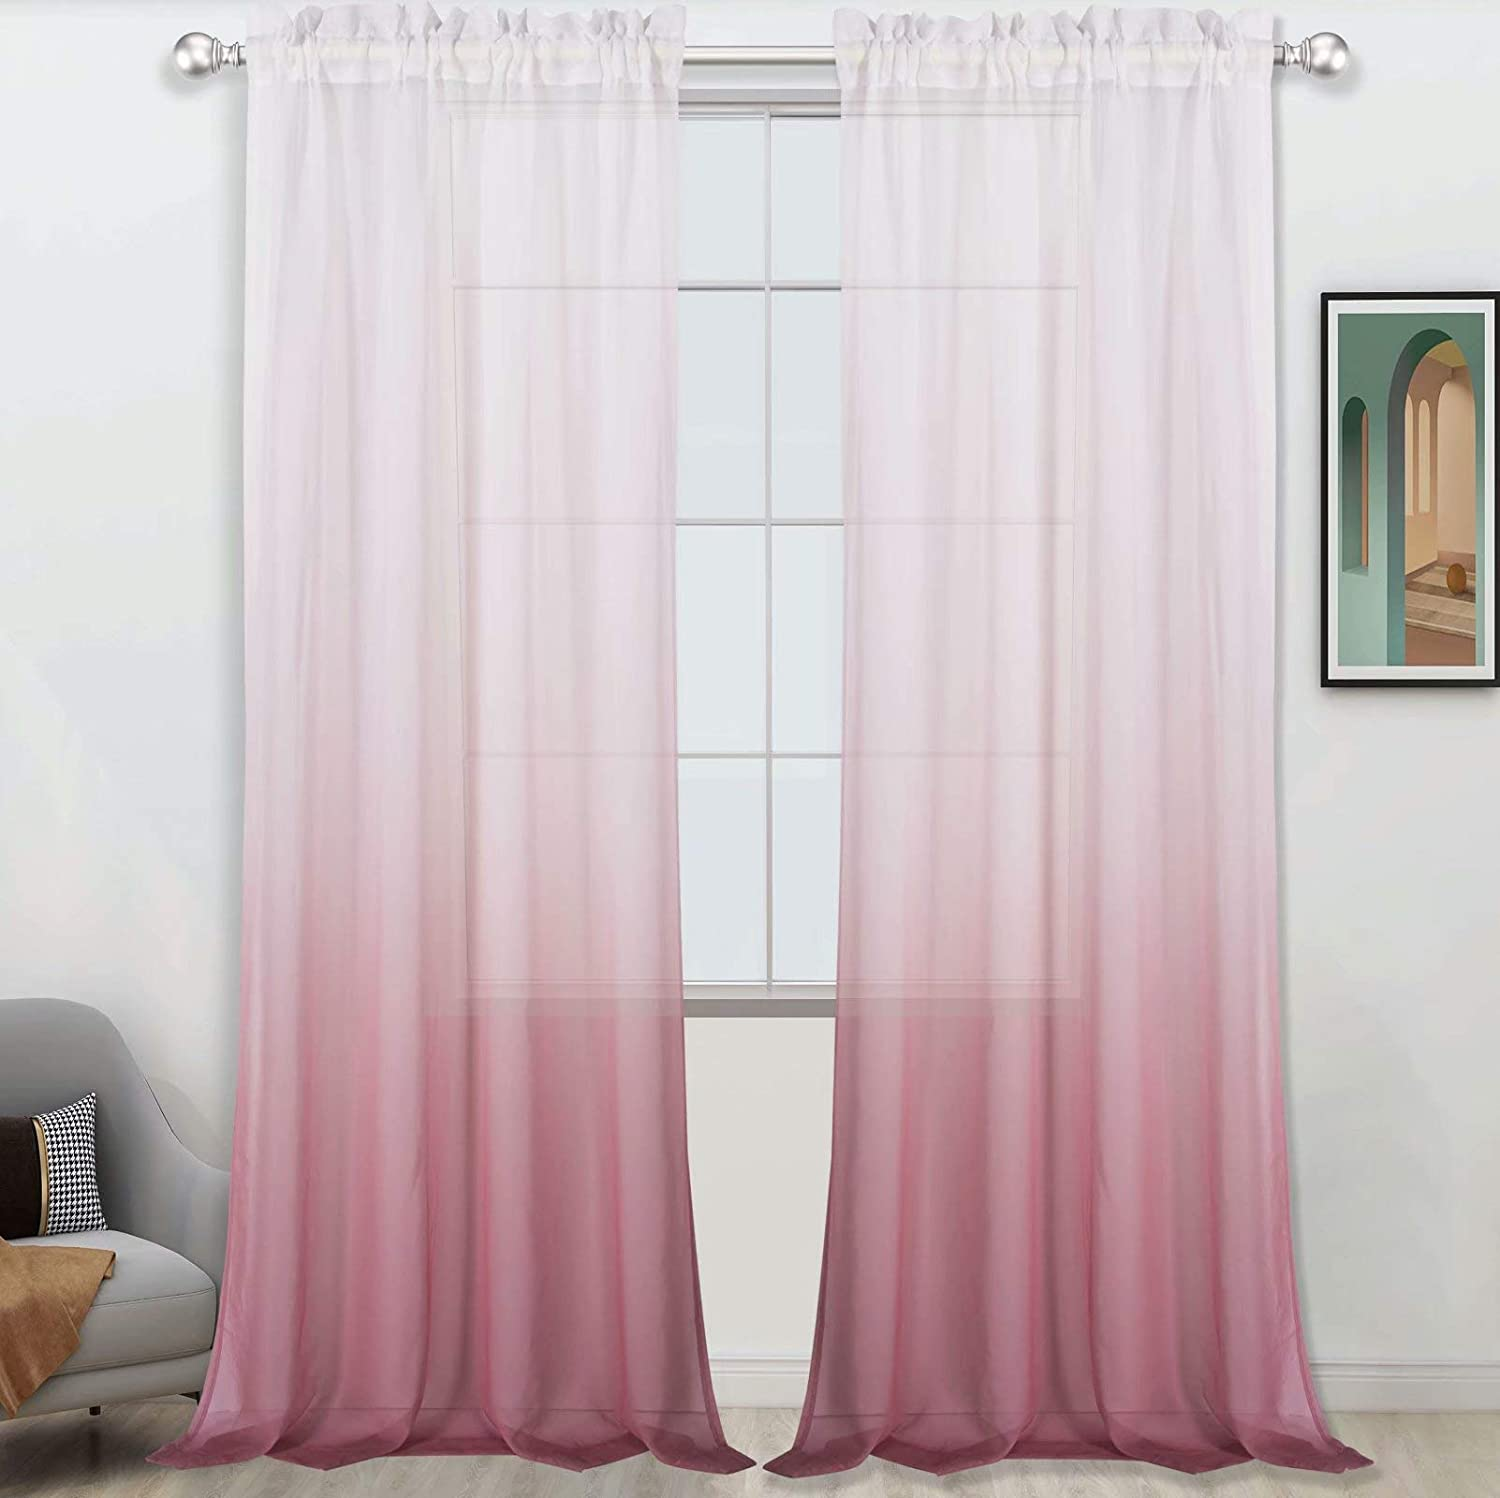 Selectex Faux Linen Ombre Import Sheer Curtains S Pocket Product Voile Rod Semi